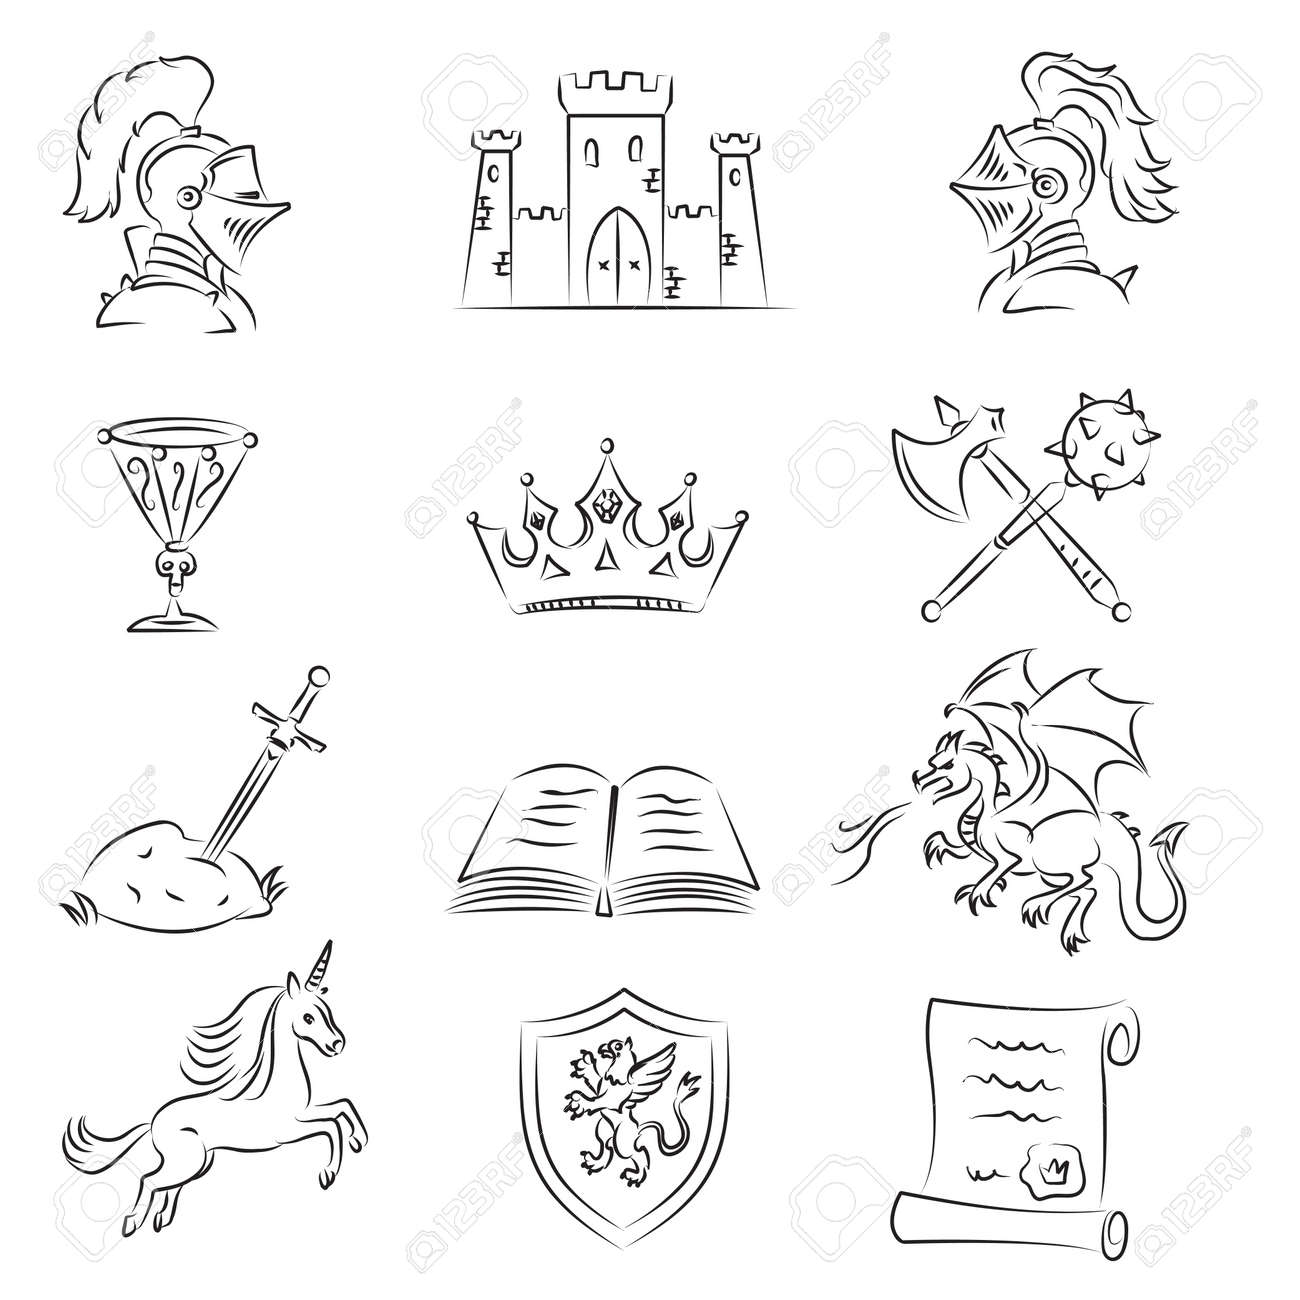 954 middle age black stock vector illustration and royalty free